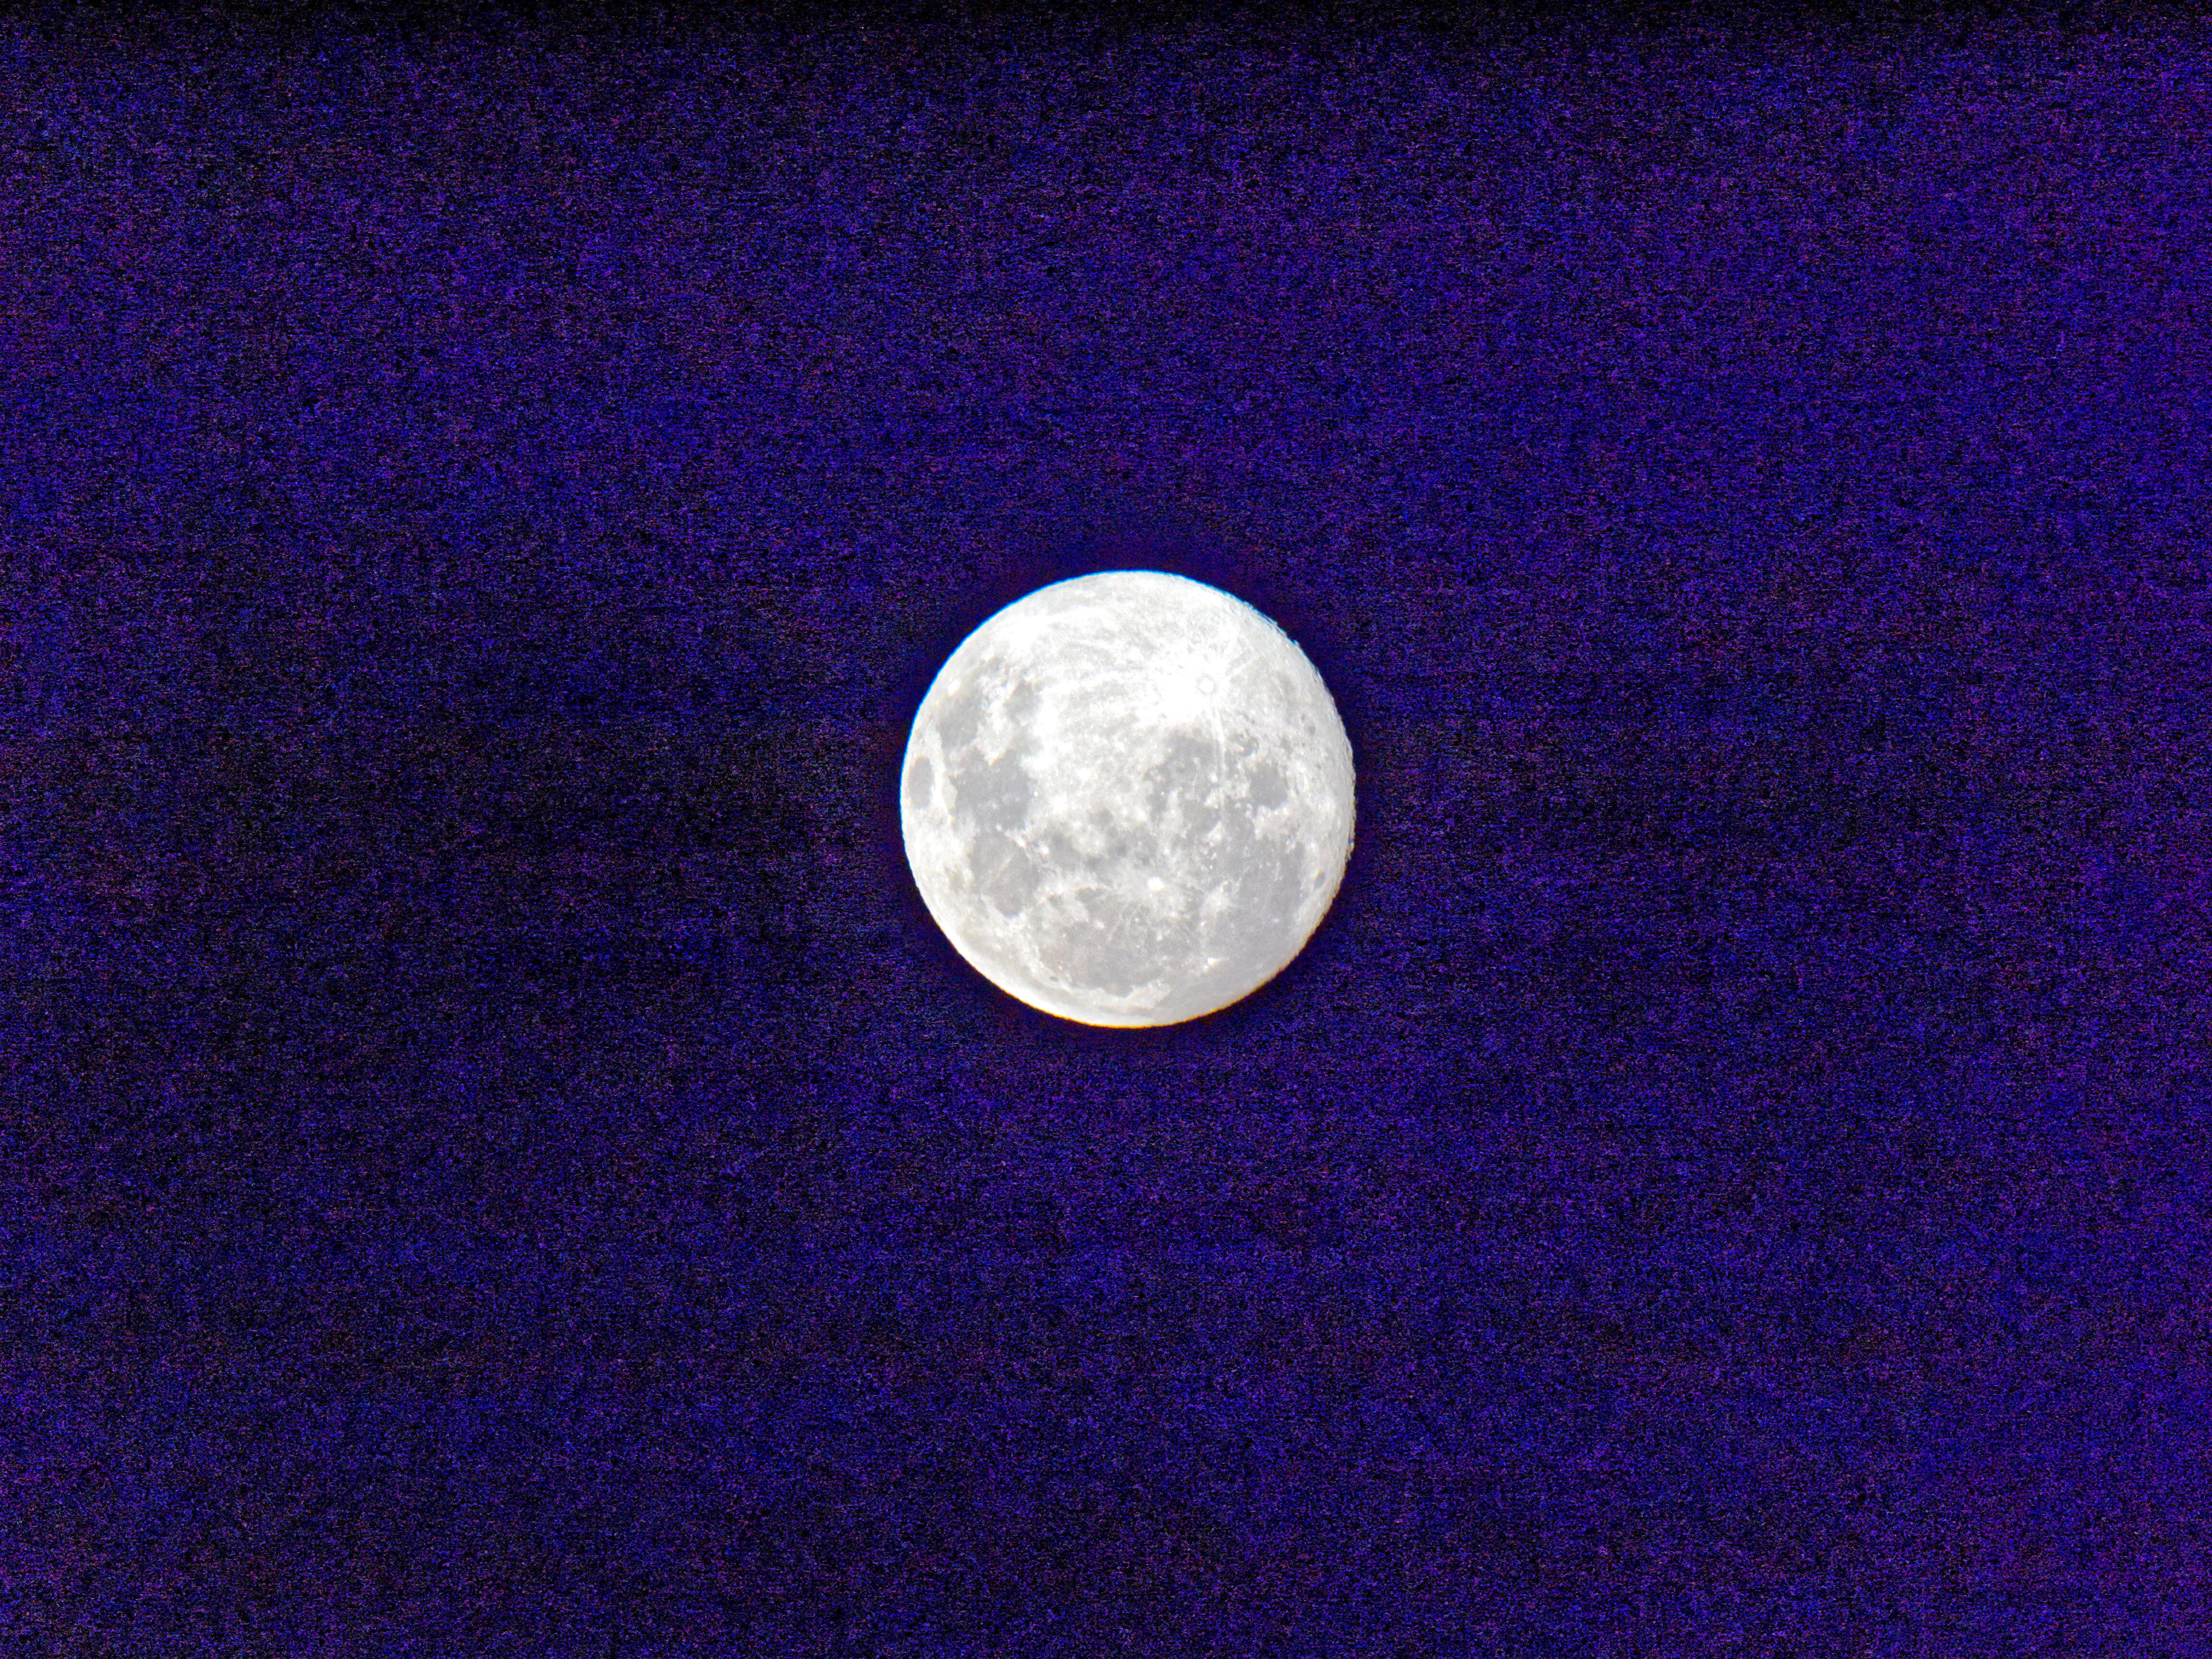 This should be Moon-7.jpeg.  Is it missing?